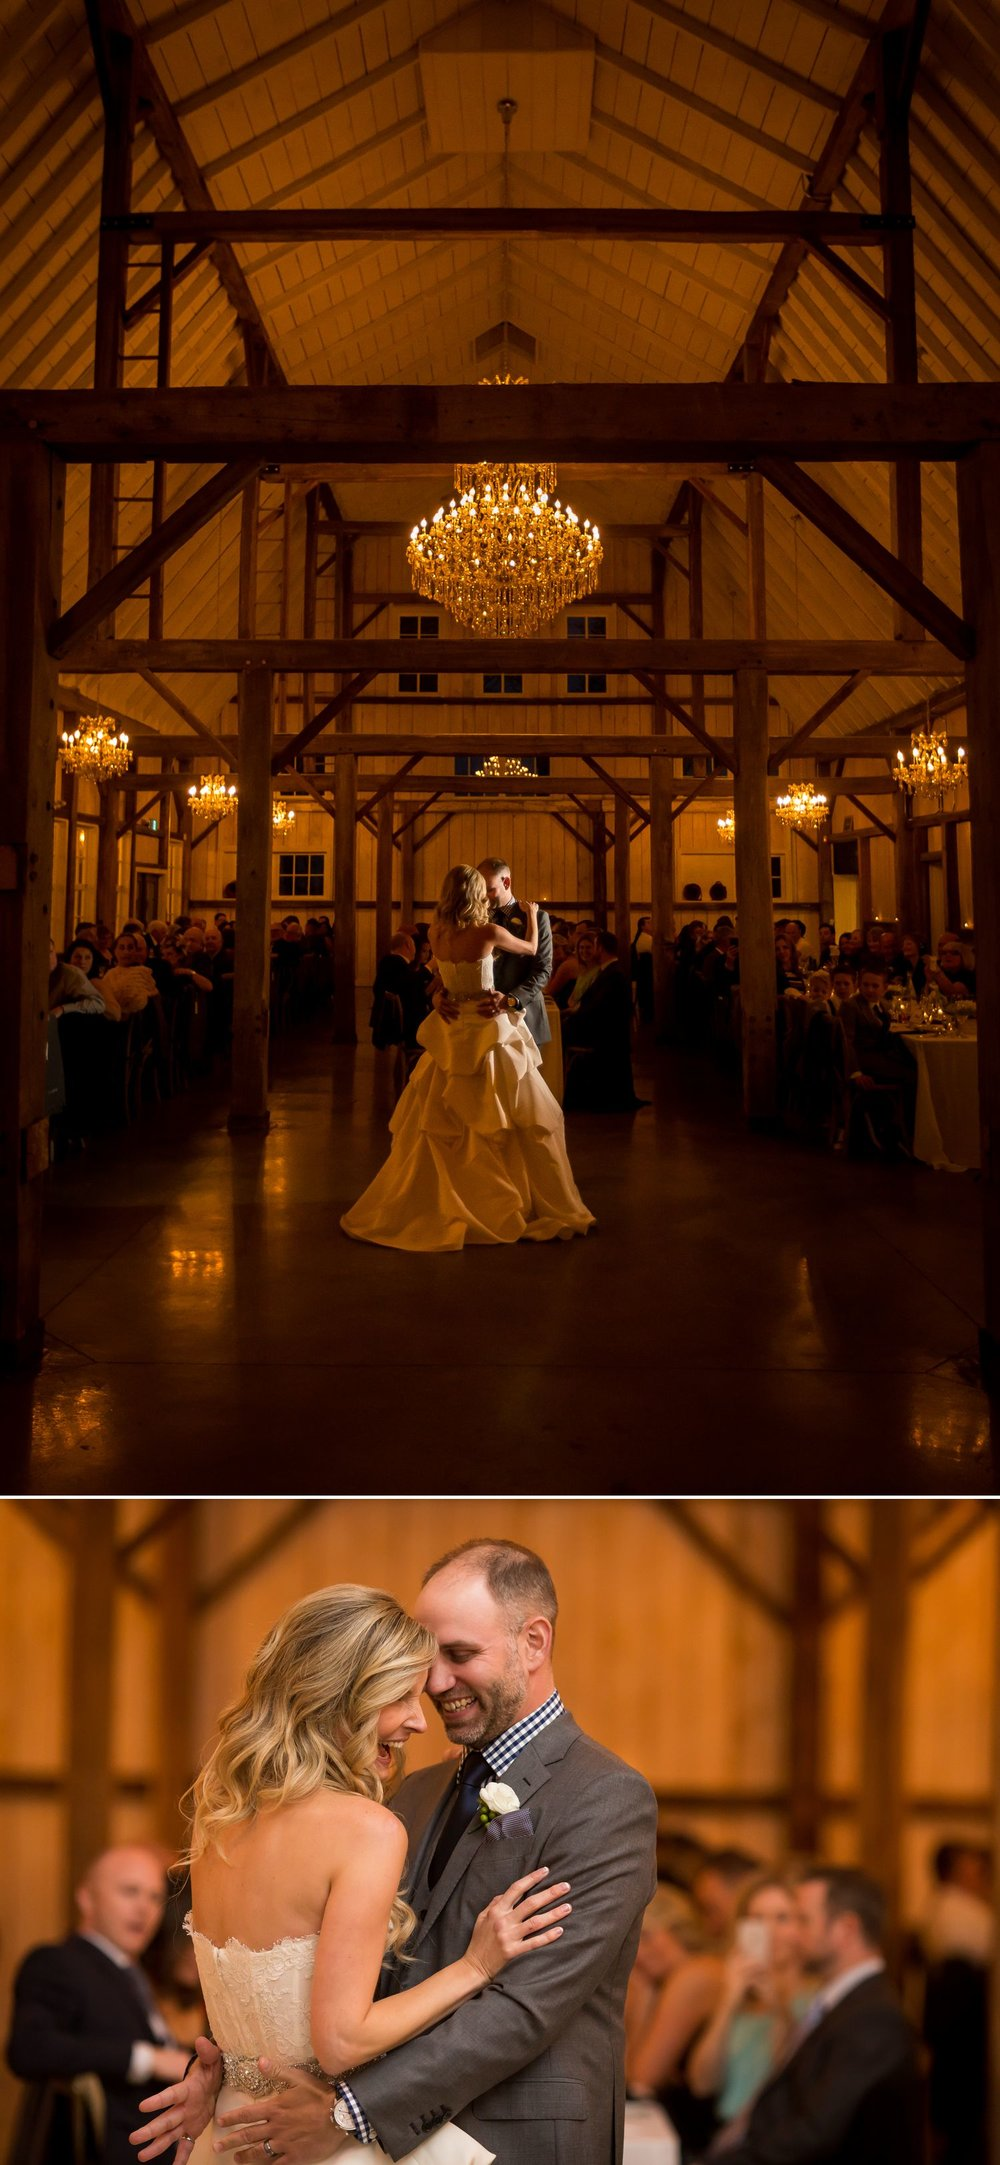 The bride and groom during their first dance at Stonefields